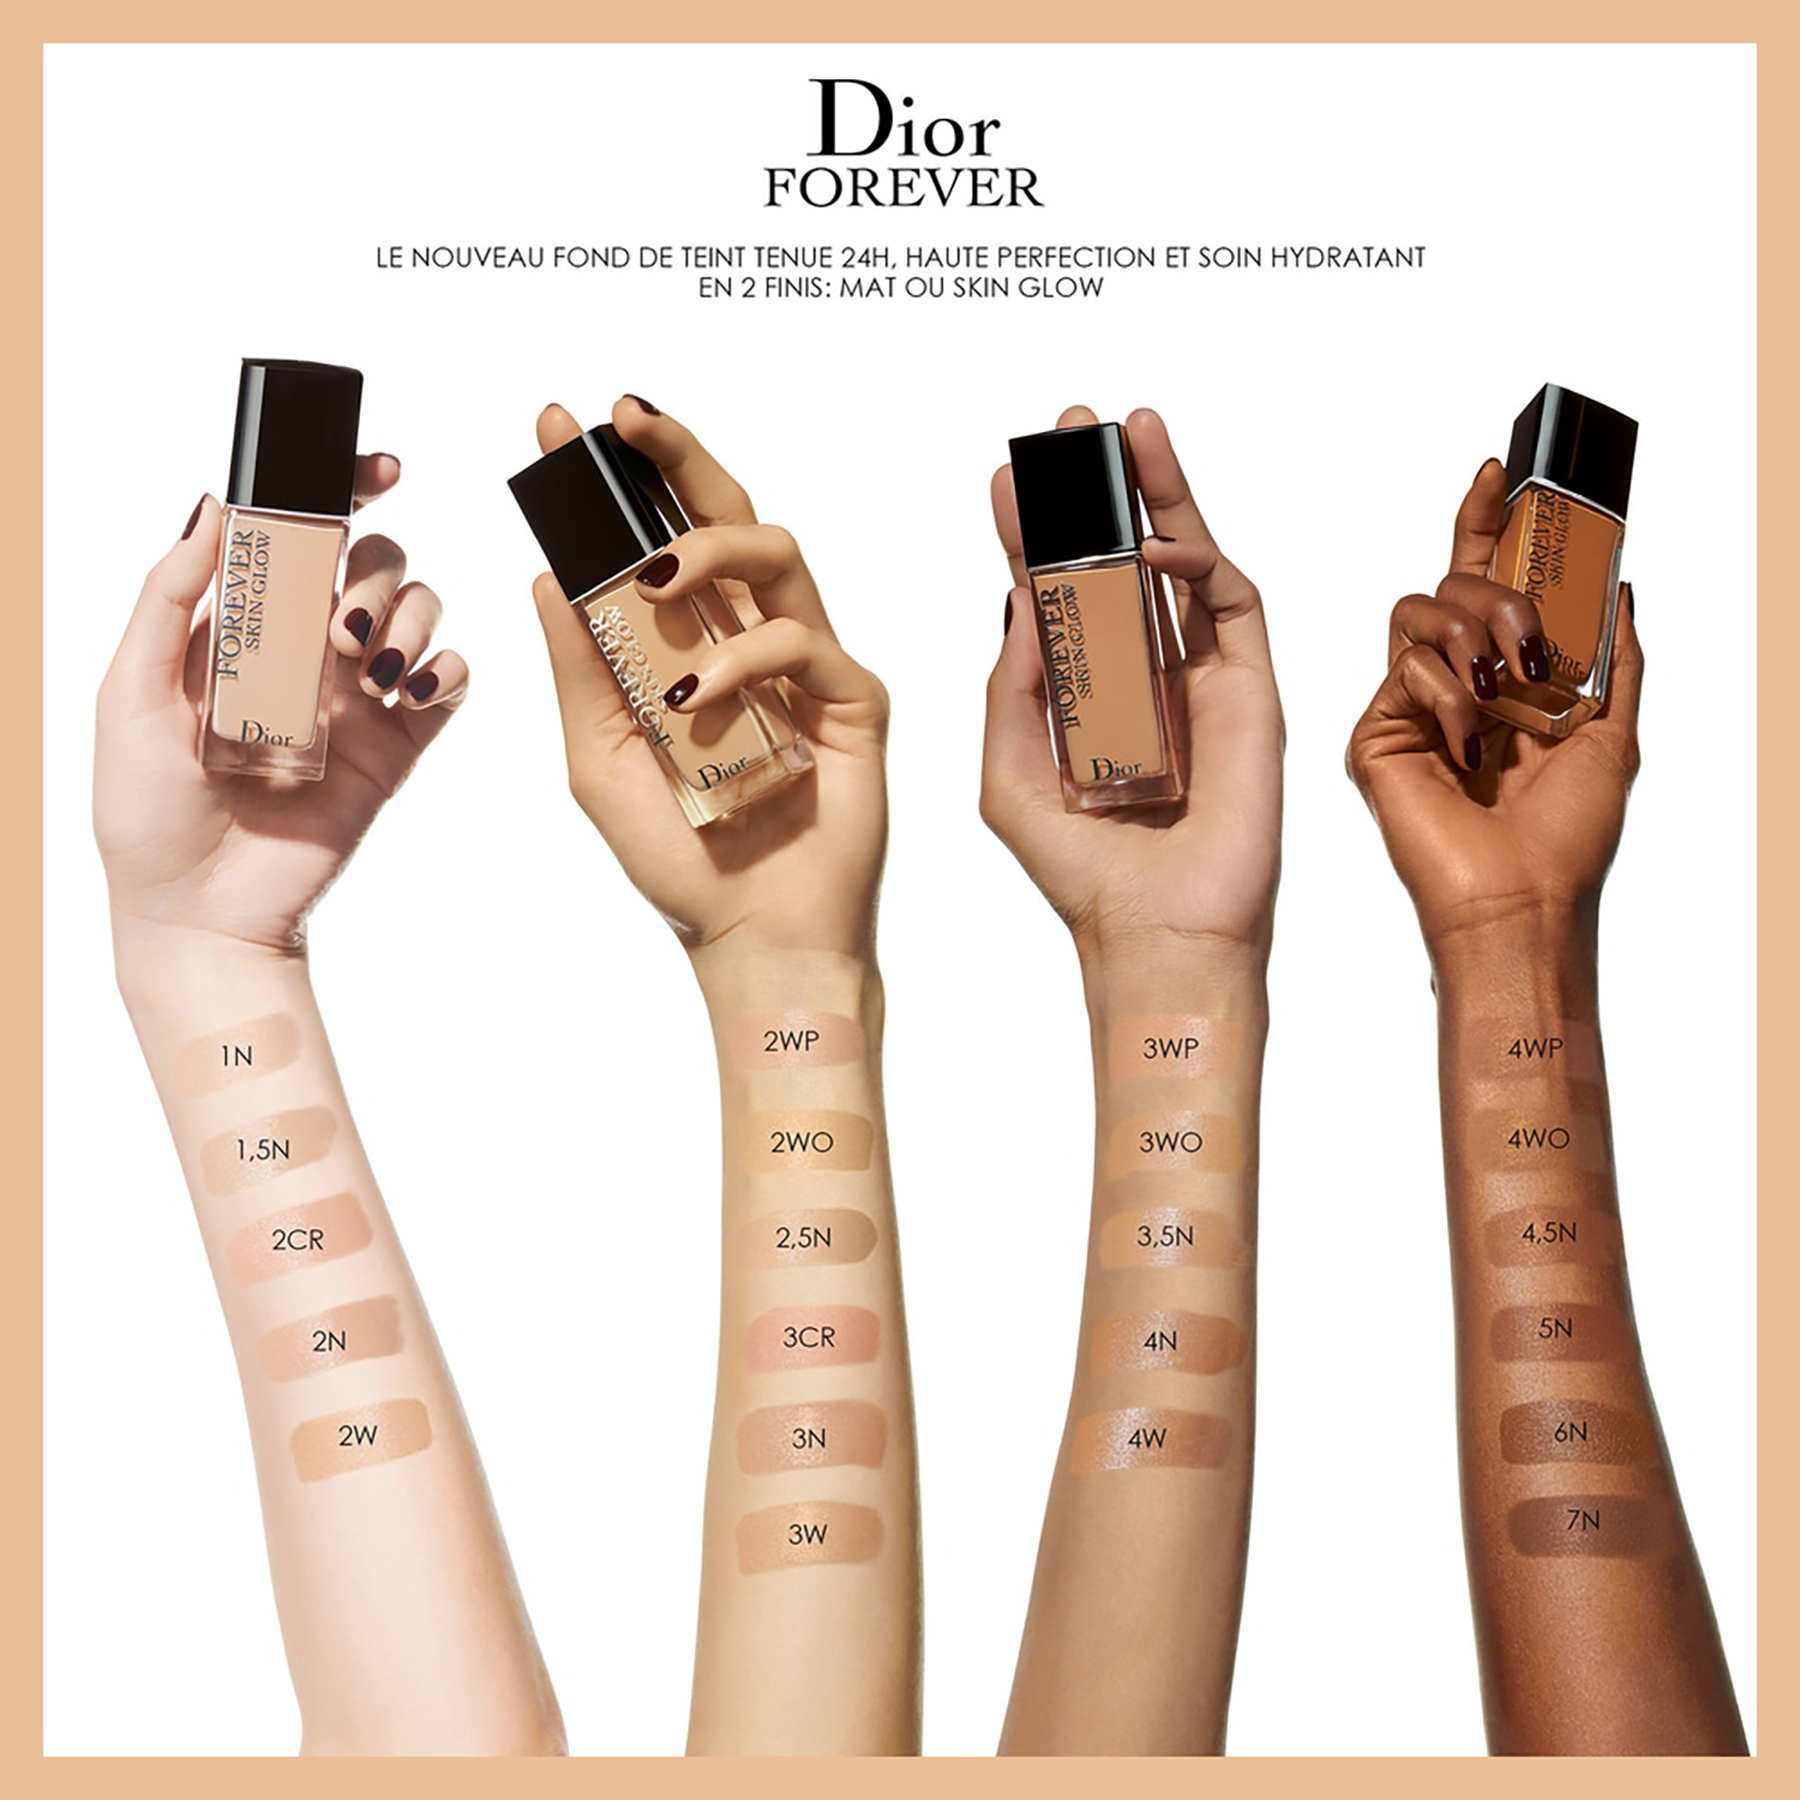 dior-forever-skin-glow-swatch